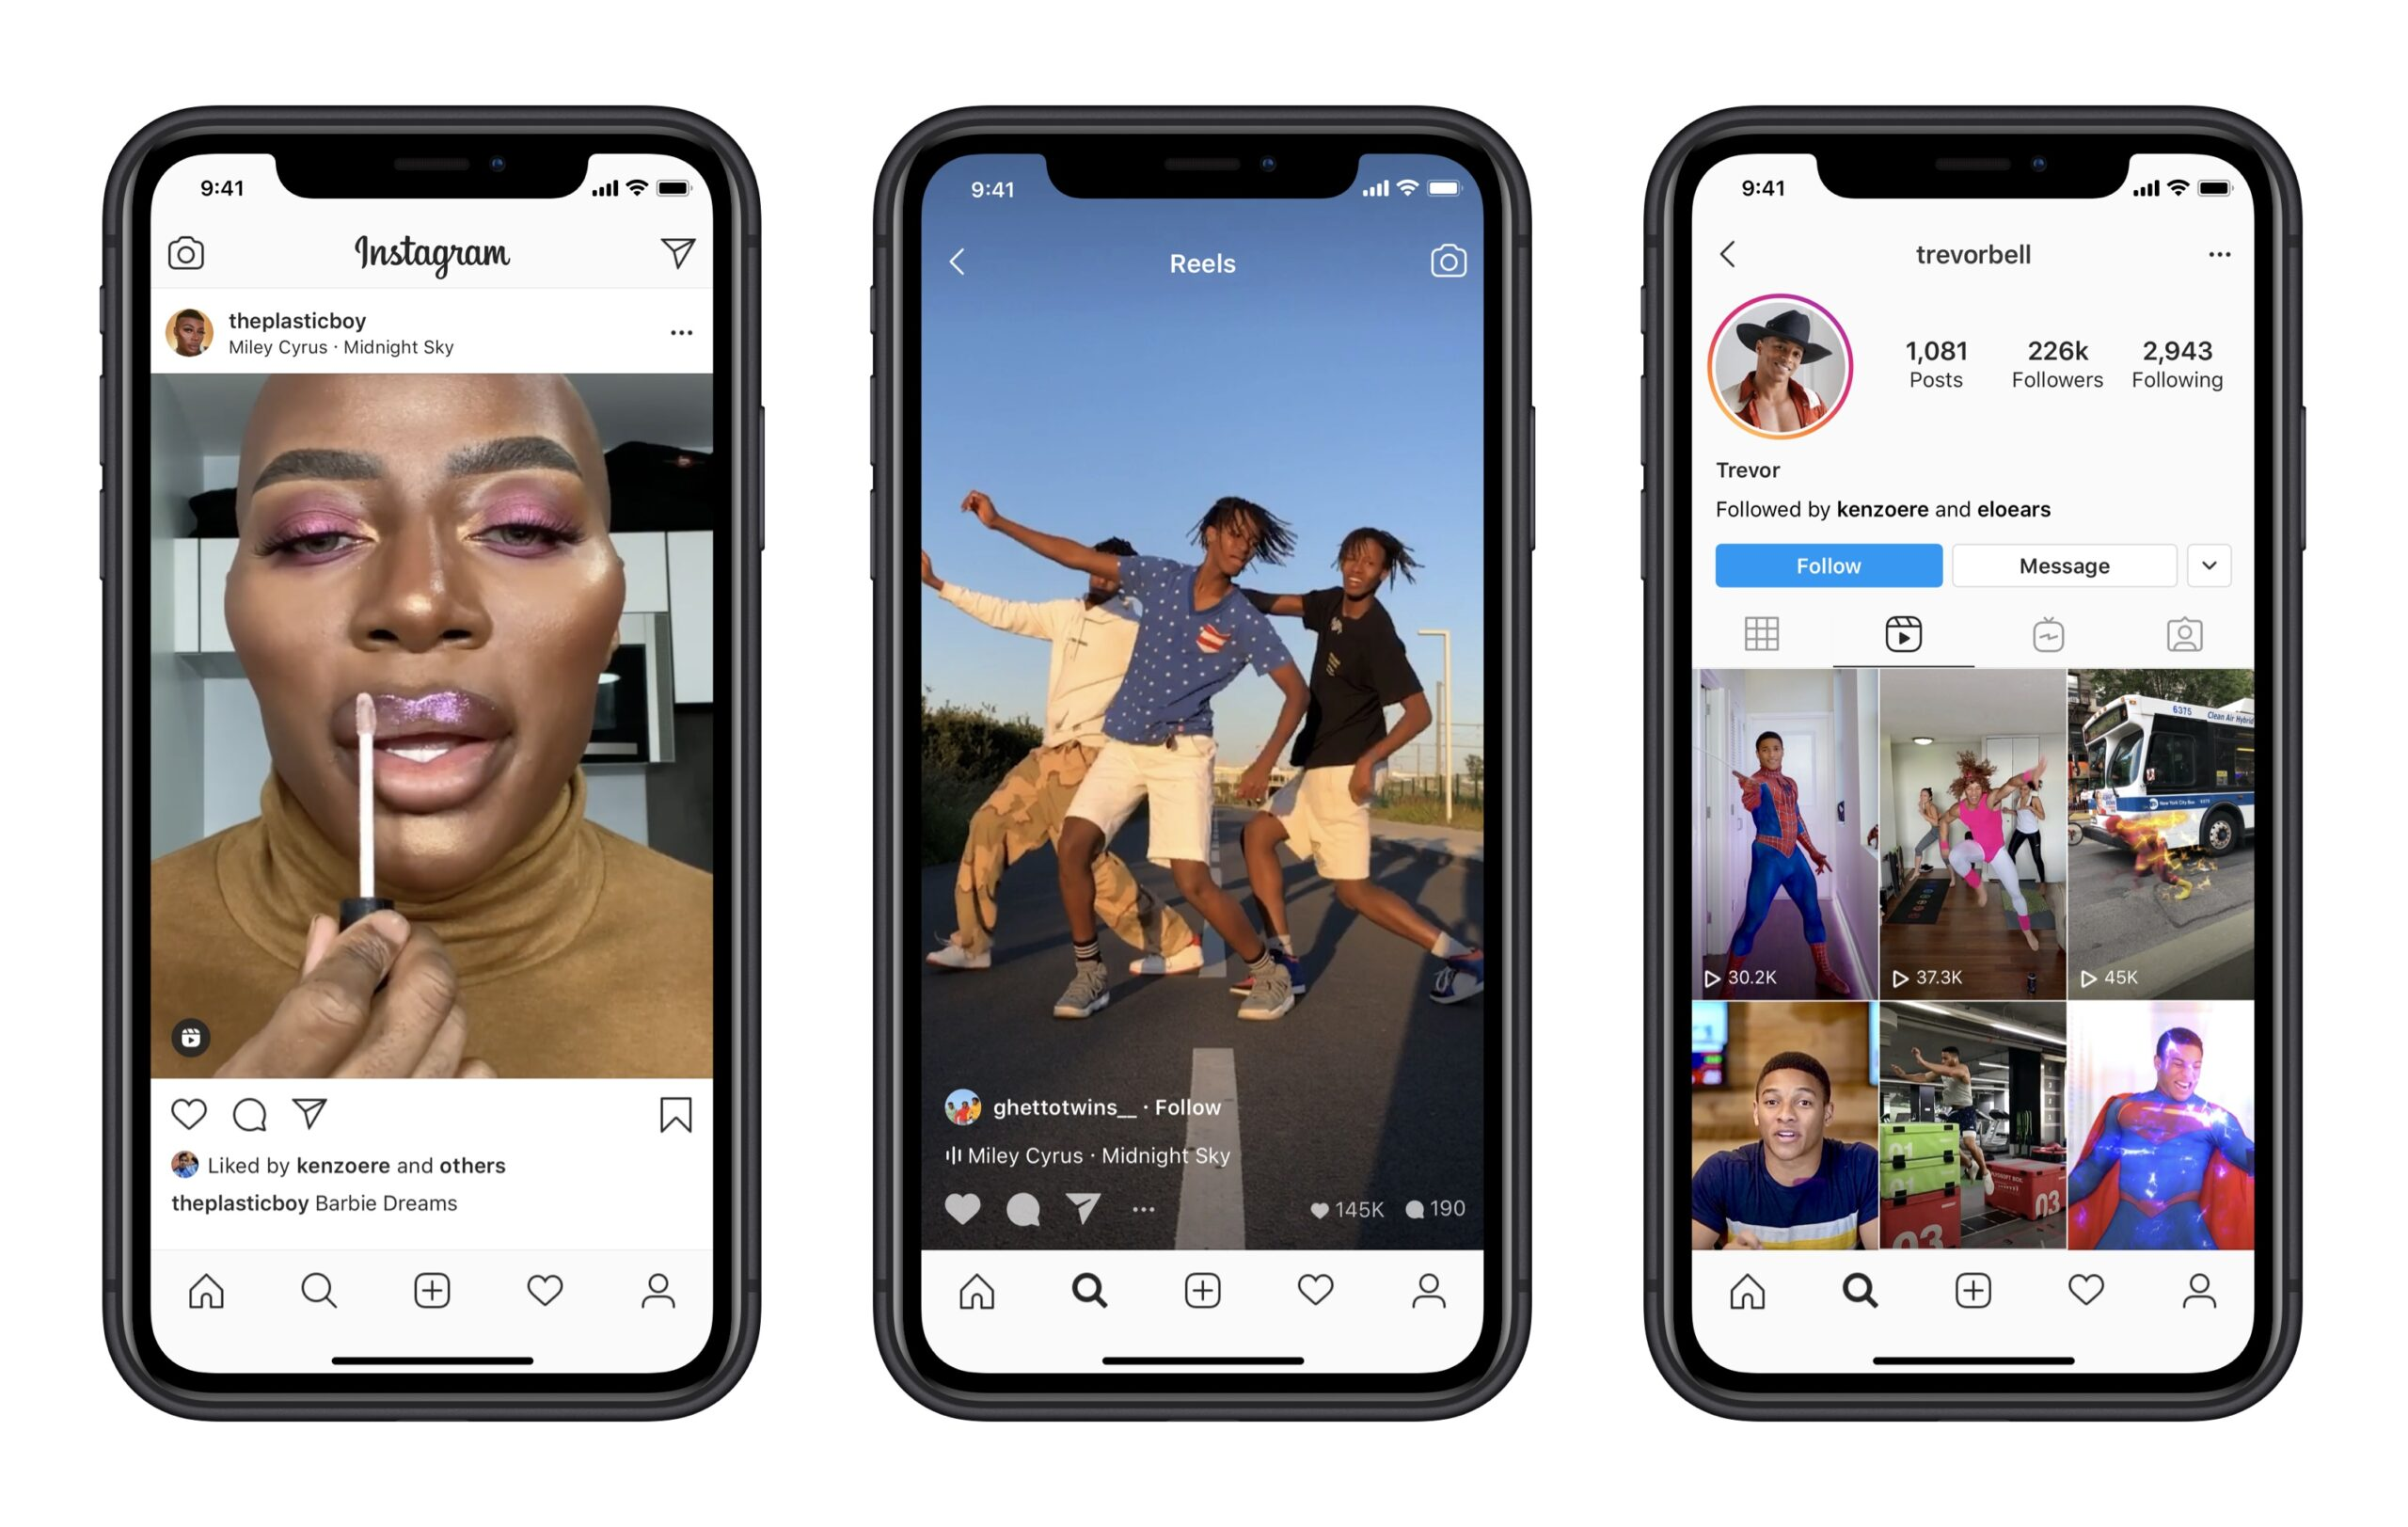 Instagram launches its new TikTok clone known as Instagram Reels